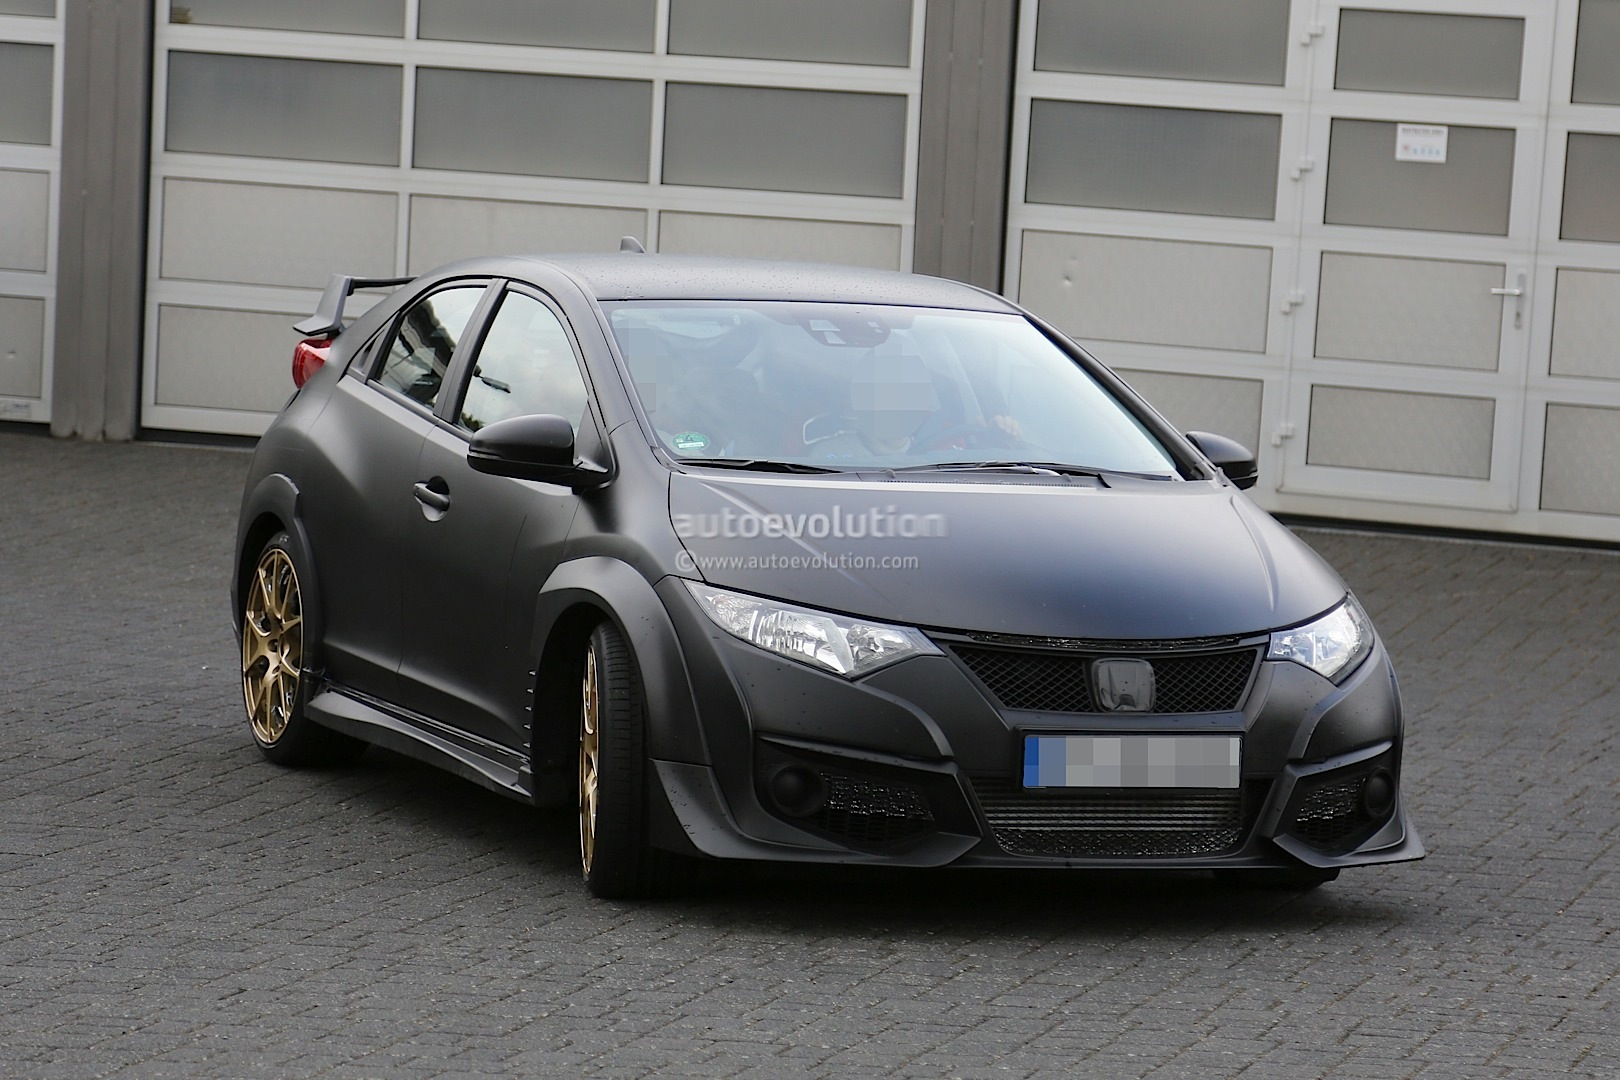 new honda civic type r spied testing against mercedes a45 amg autoevolution. Black Bedroom Furniture Sets. Home Design Ideas